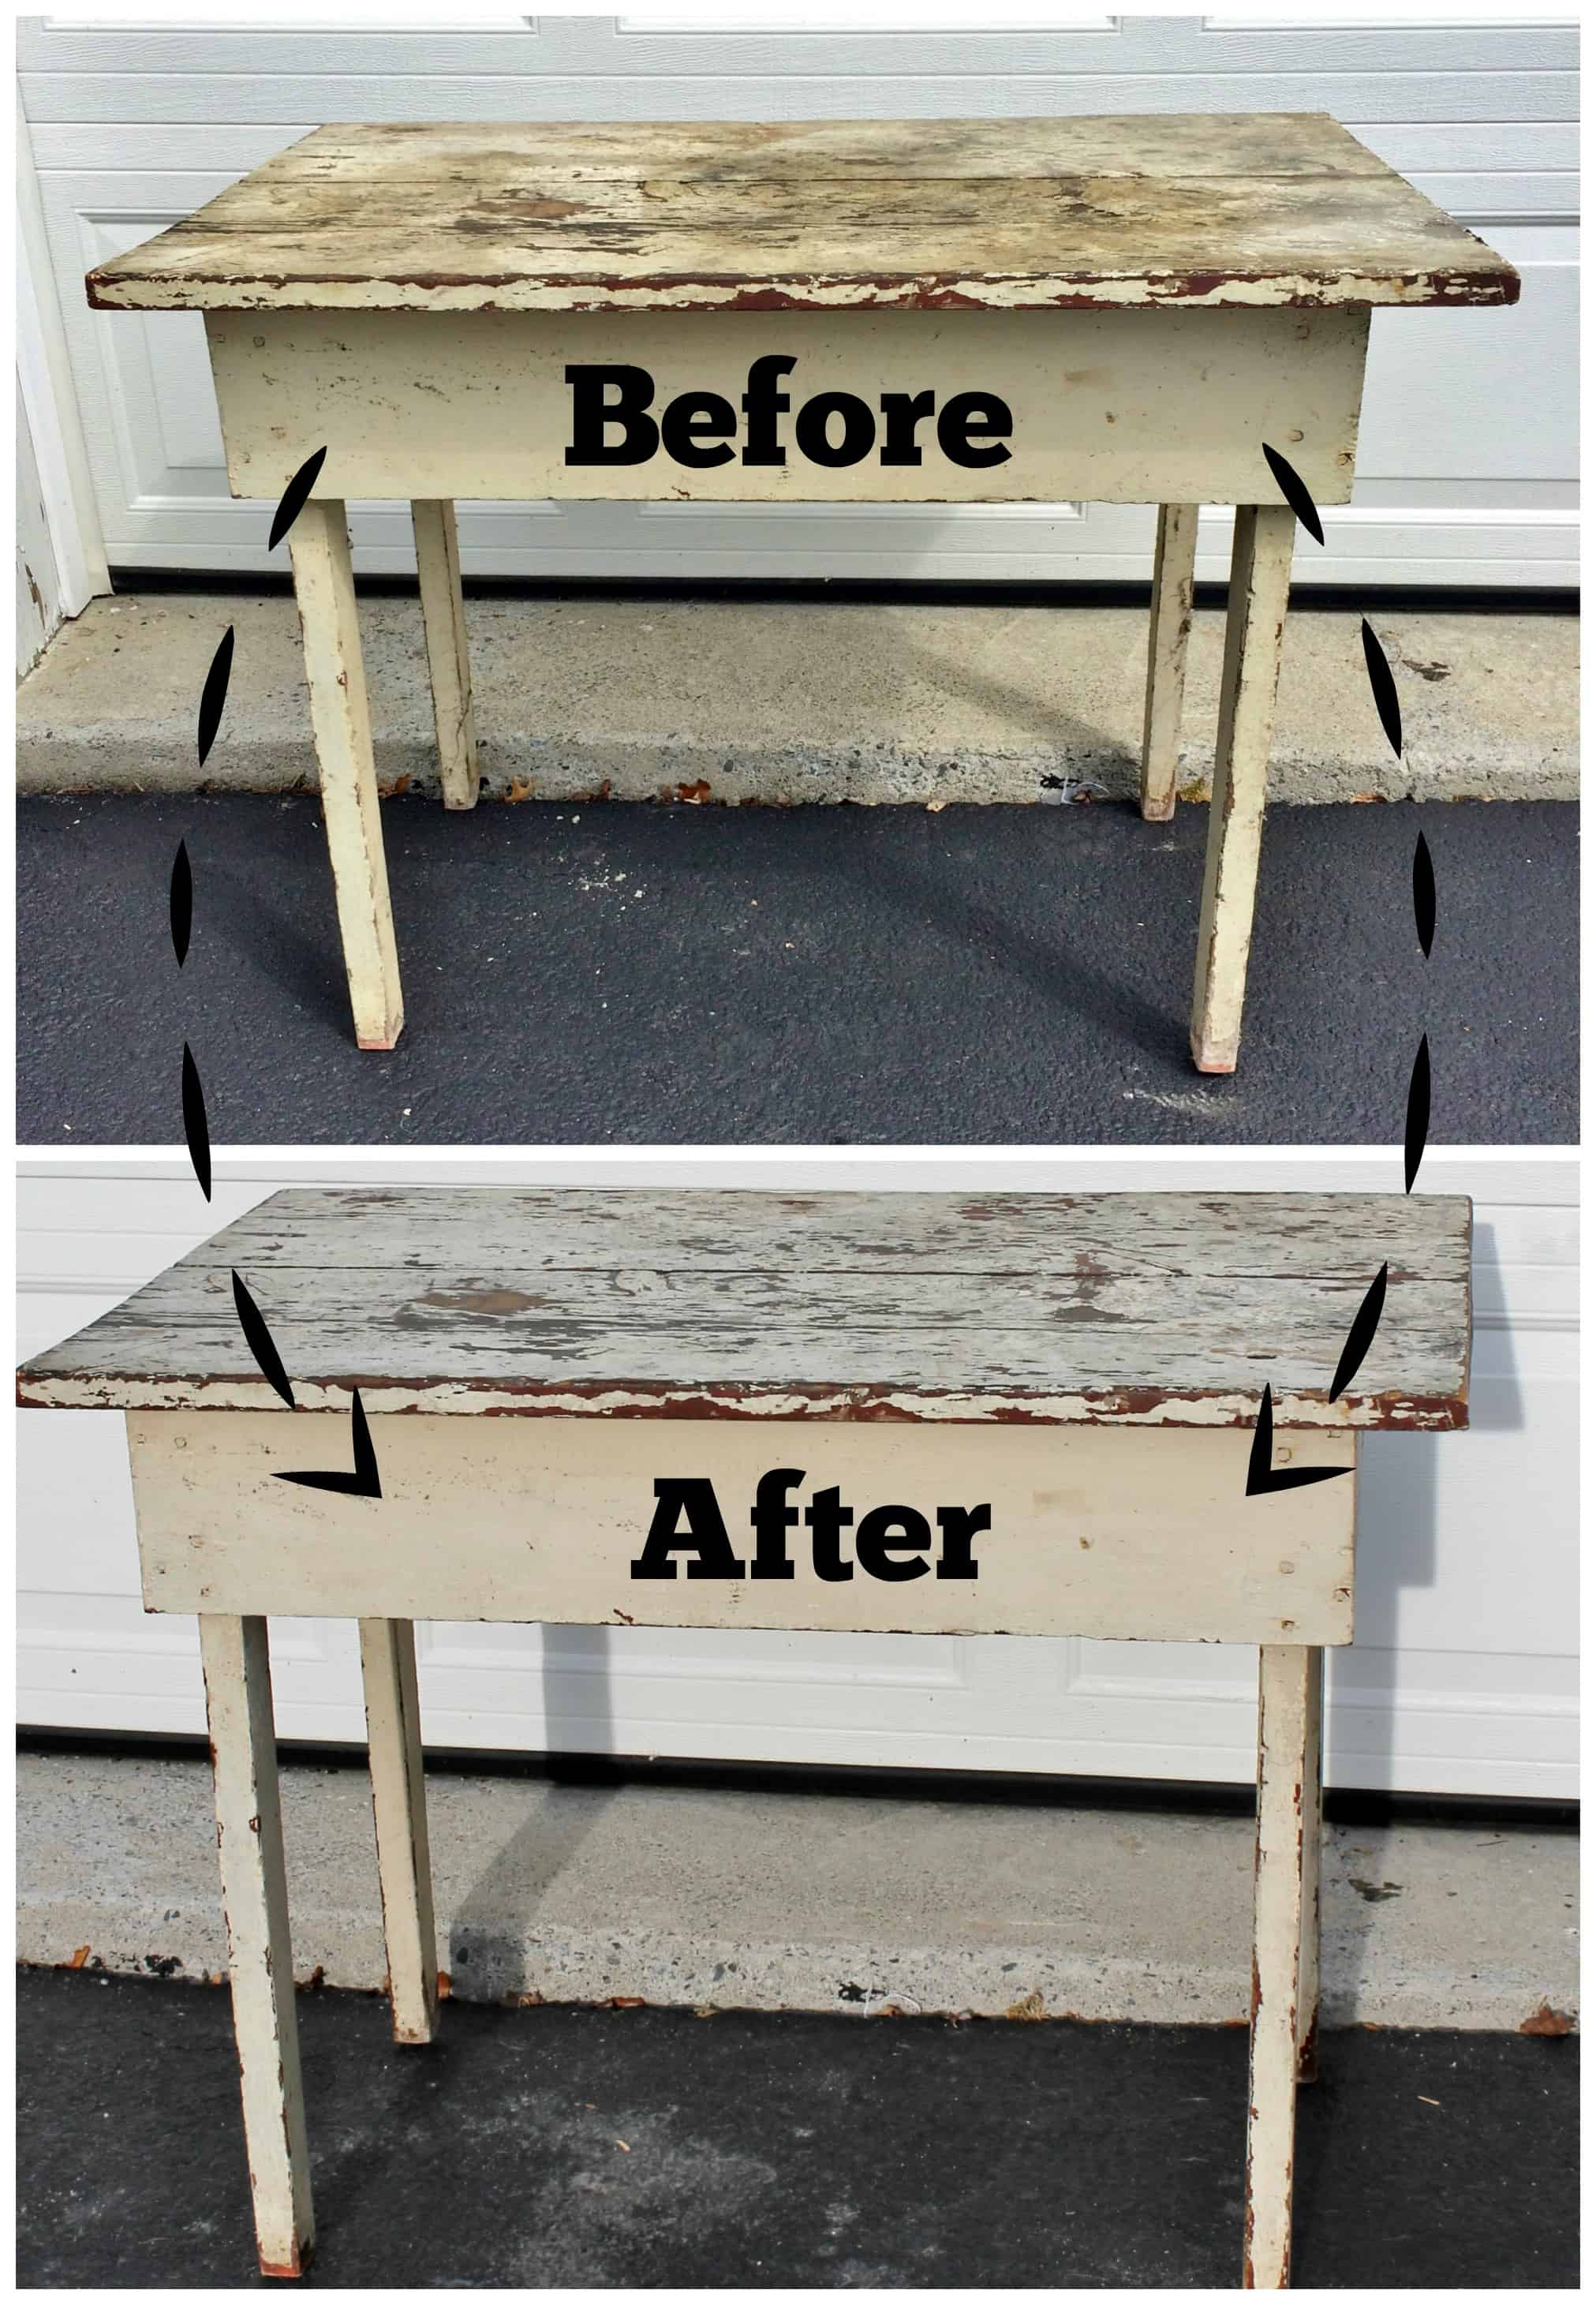 before-and-after-shots-of-grundgy-table